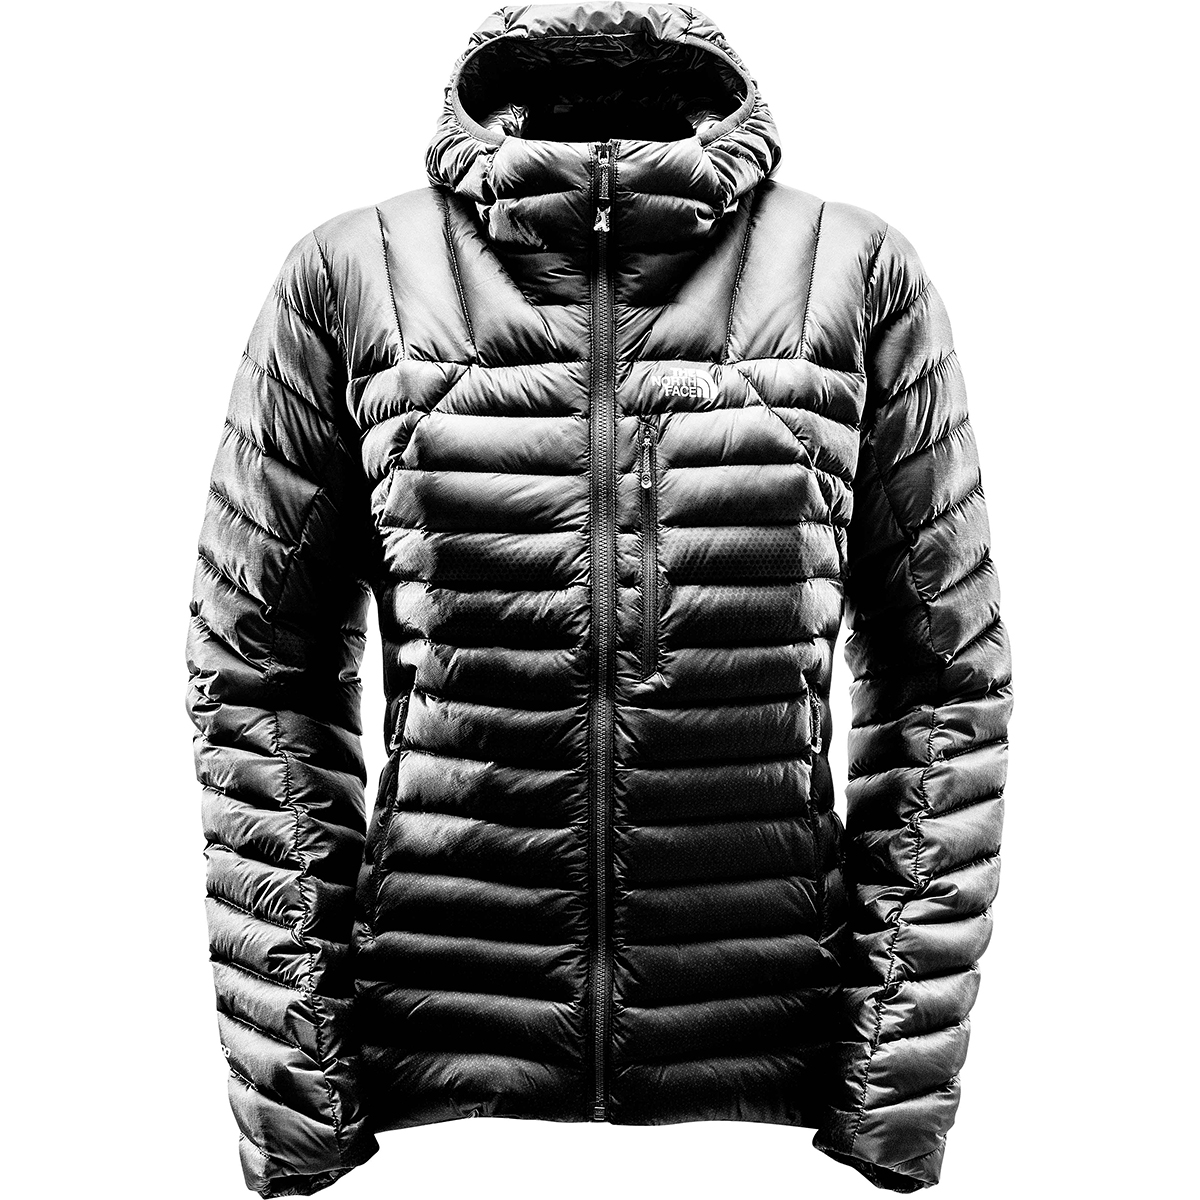 The North Face Women S Upper West Side Jacket Dark Navy Blue 2238111 ...